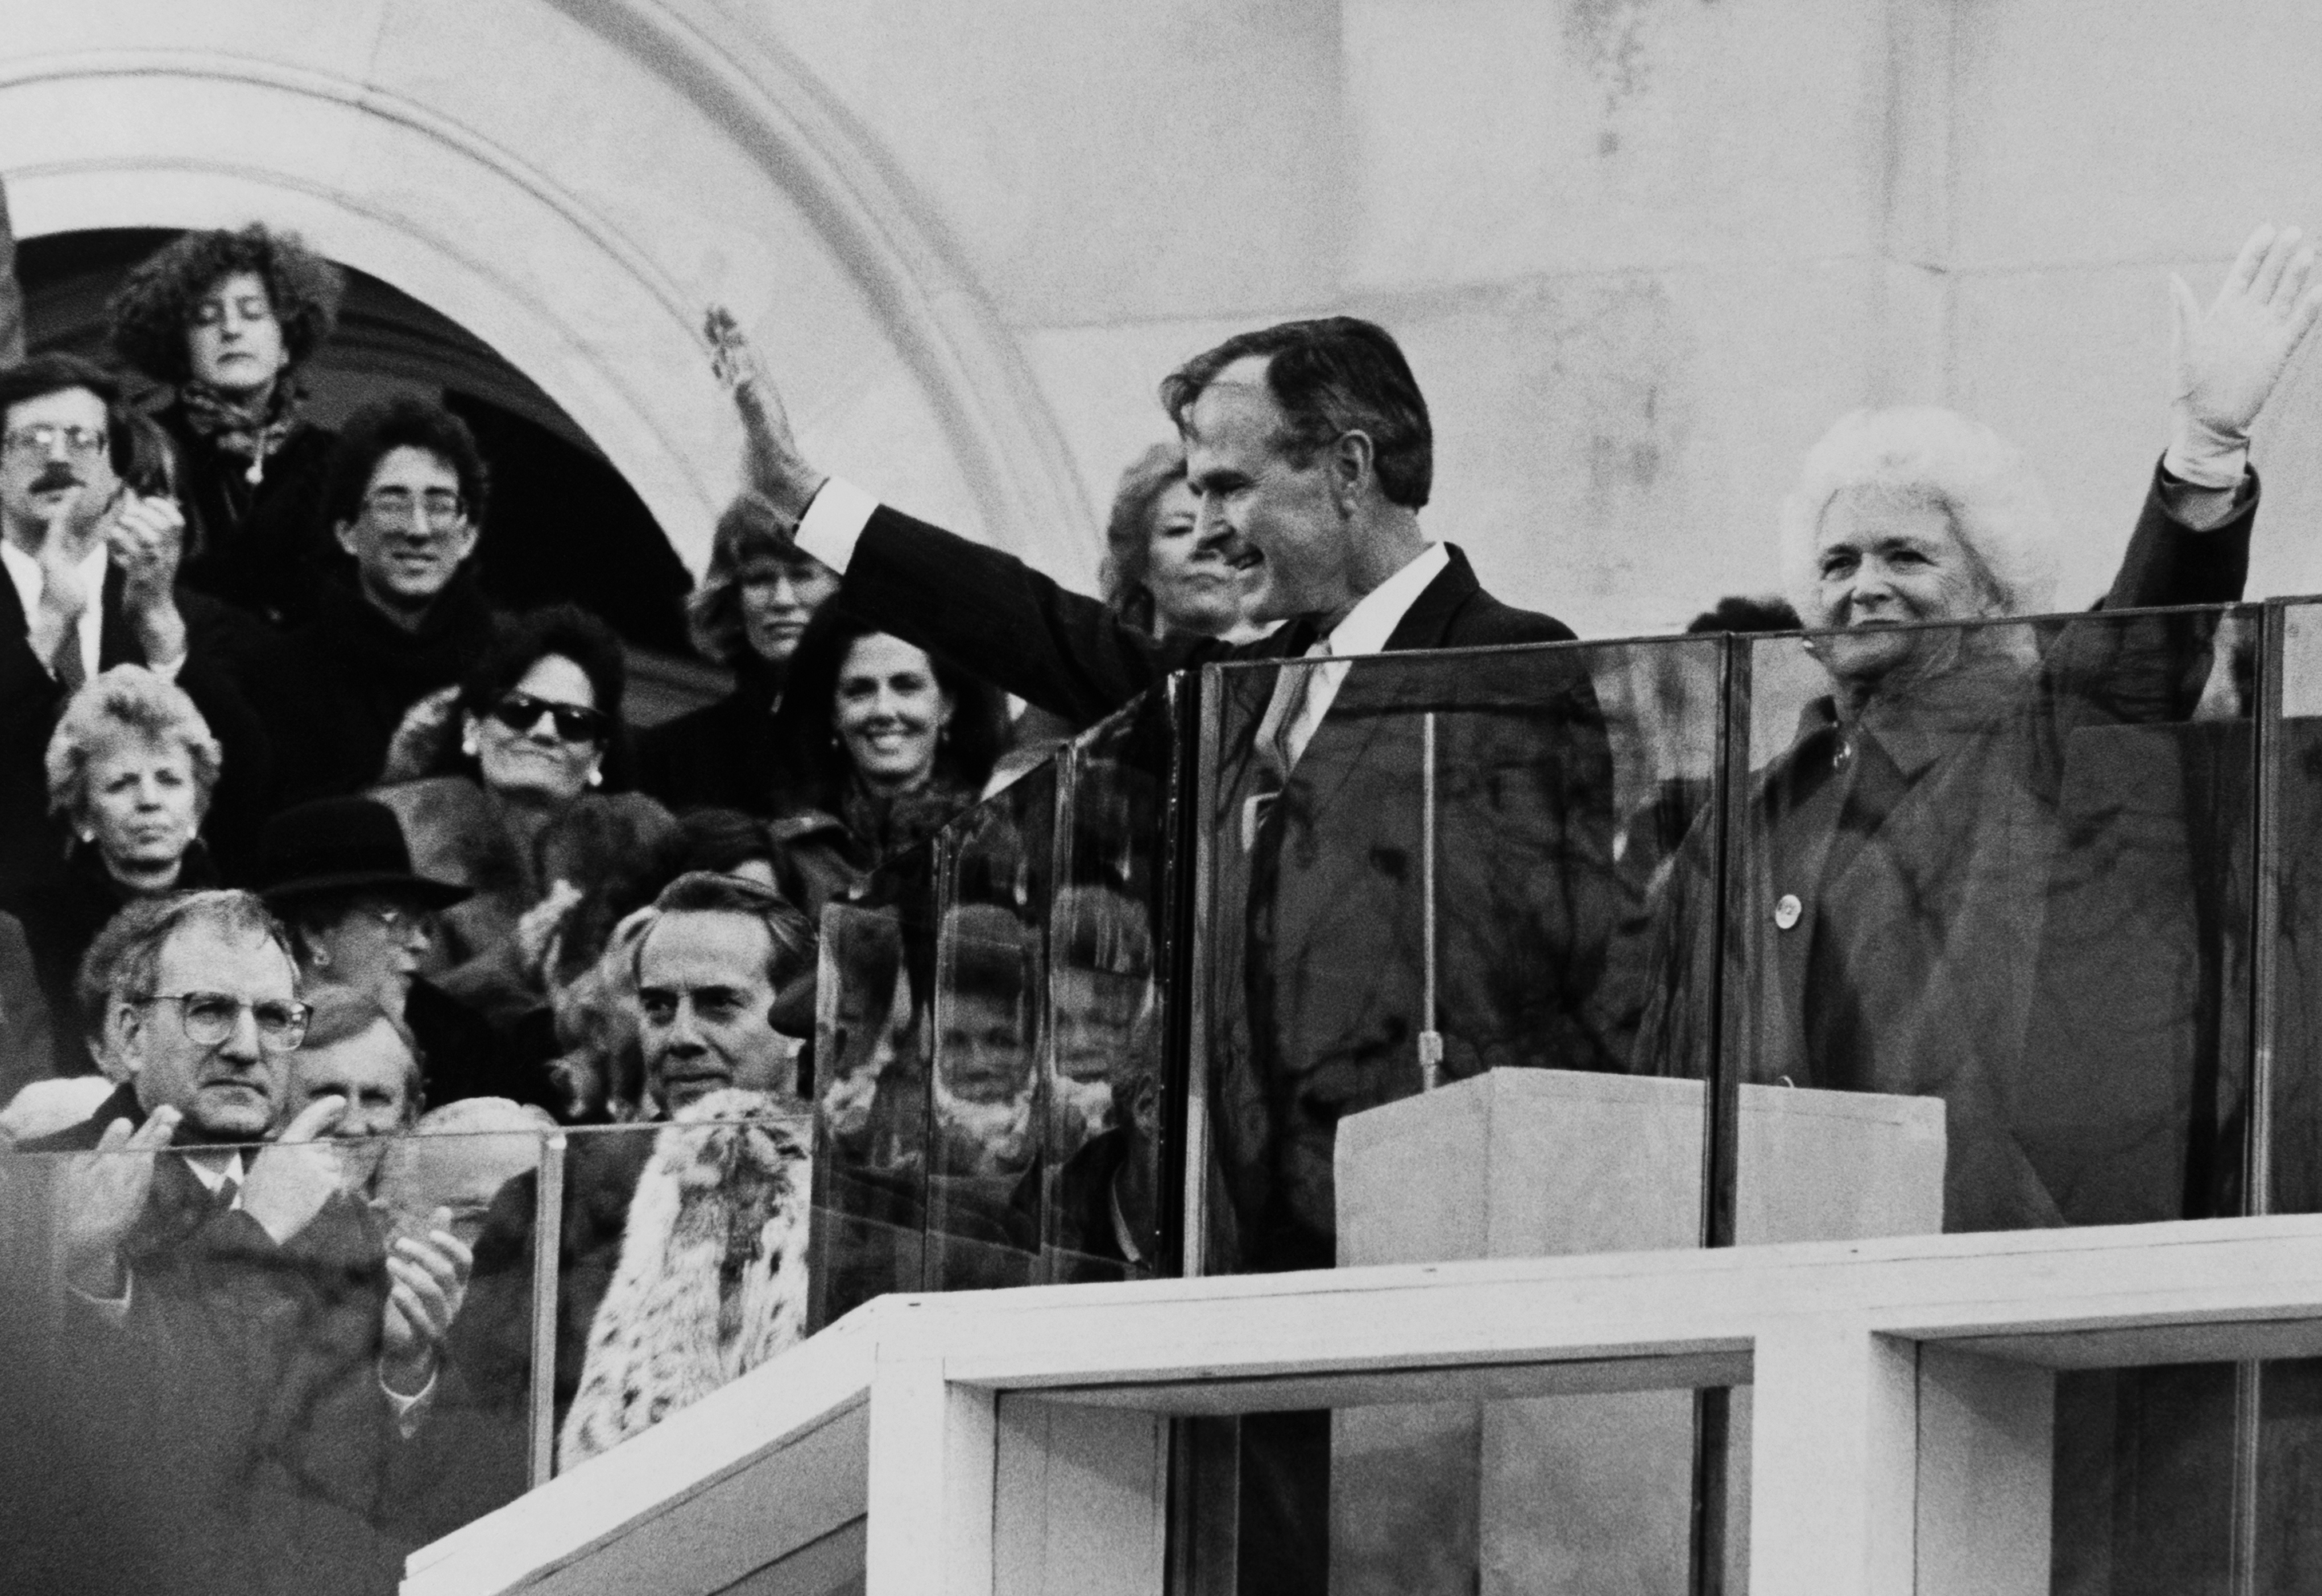 President George H.W. Bush at his inauguration in 1989. (CQ Roll Call file photo)